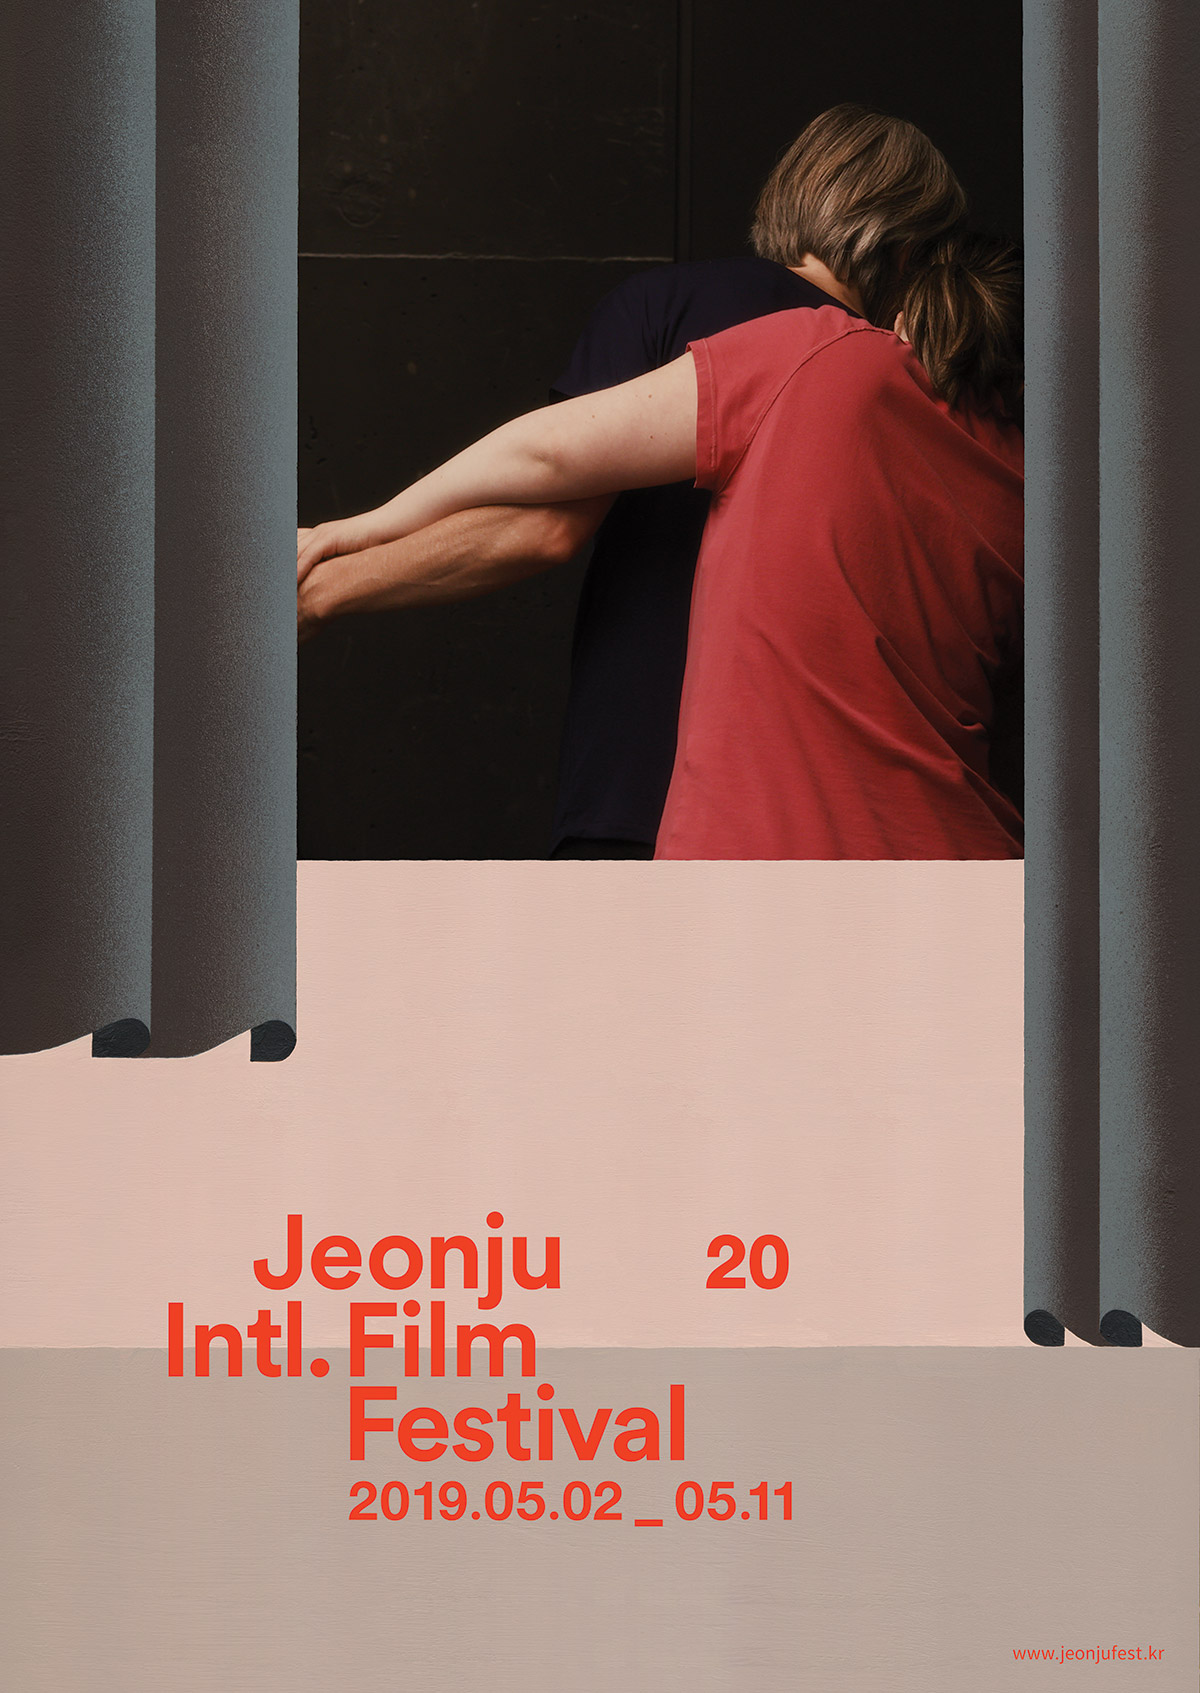 Jeong Hwa Min Jeonju Intl.Film Festival official Trailer and Posters